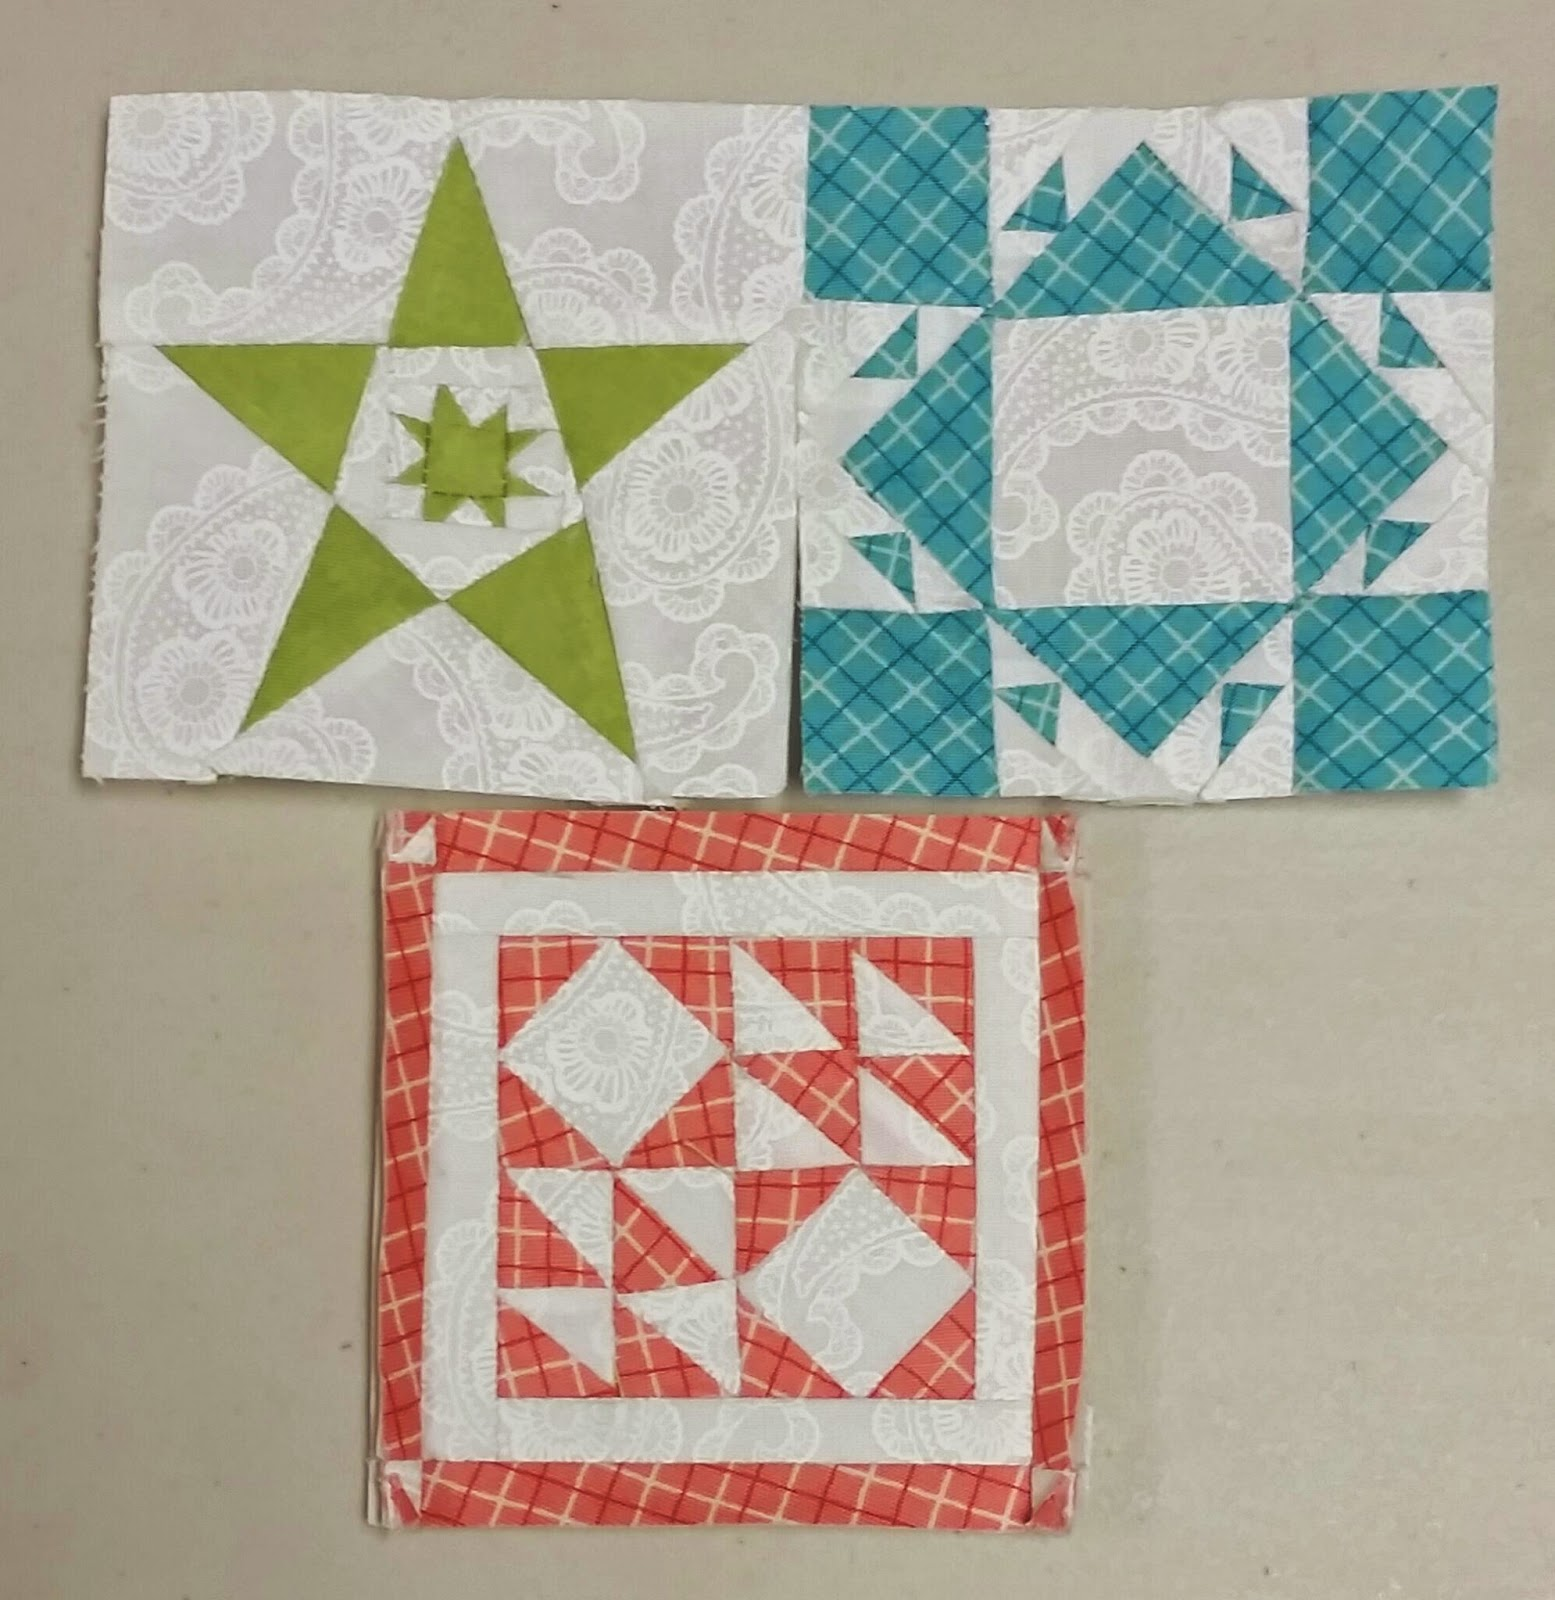 That Center Star On The Papau0027s Star Block Is A Little Wonky But I Still  Love It! Two More To Go Then Iu0027ll Make The Shop Blocks Themselves.